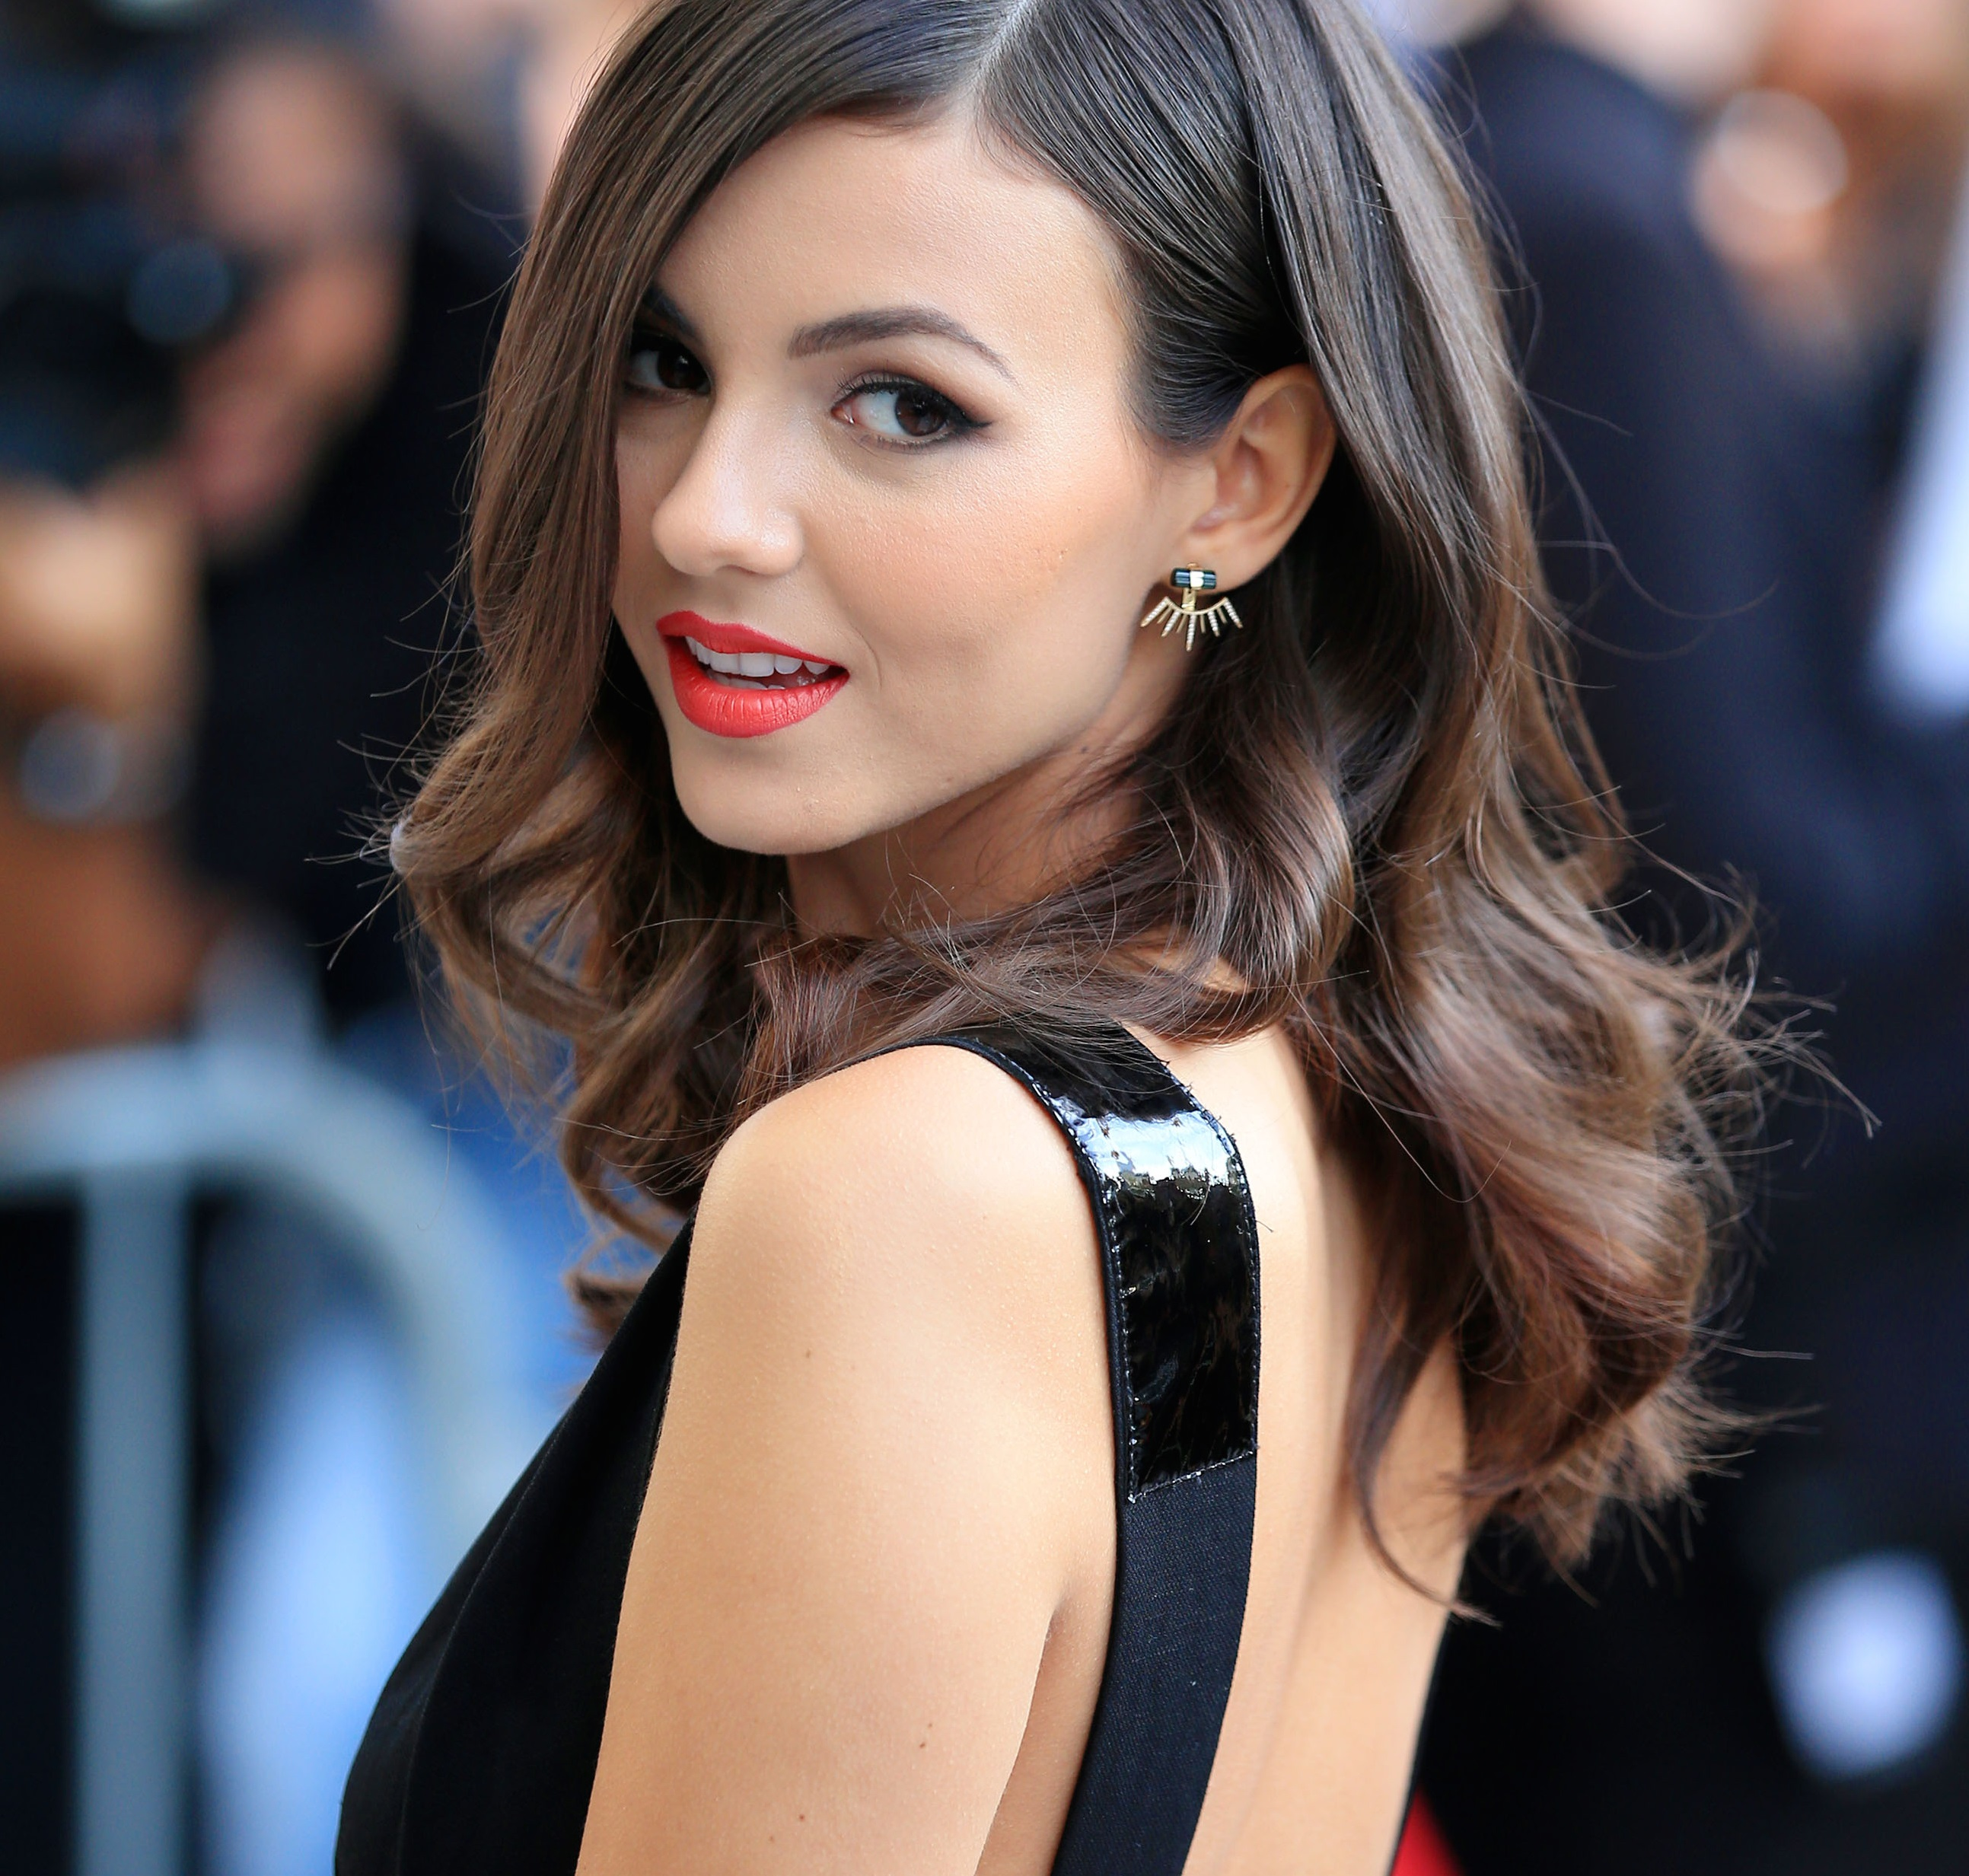 Victoria Justice Family Pictures, Parents, Age, Ethnicity